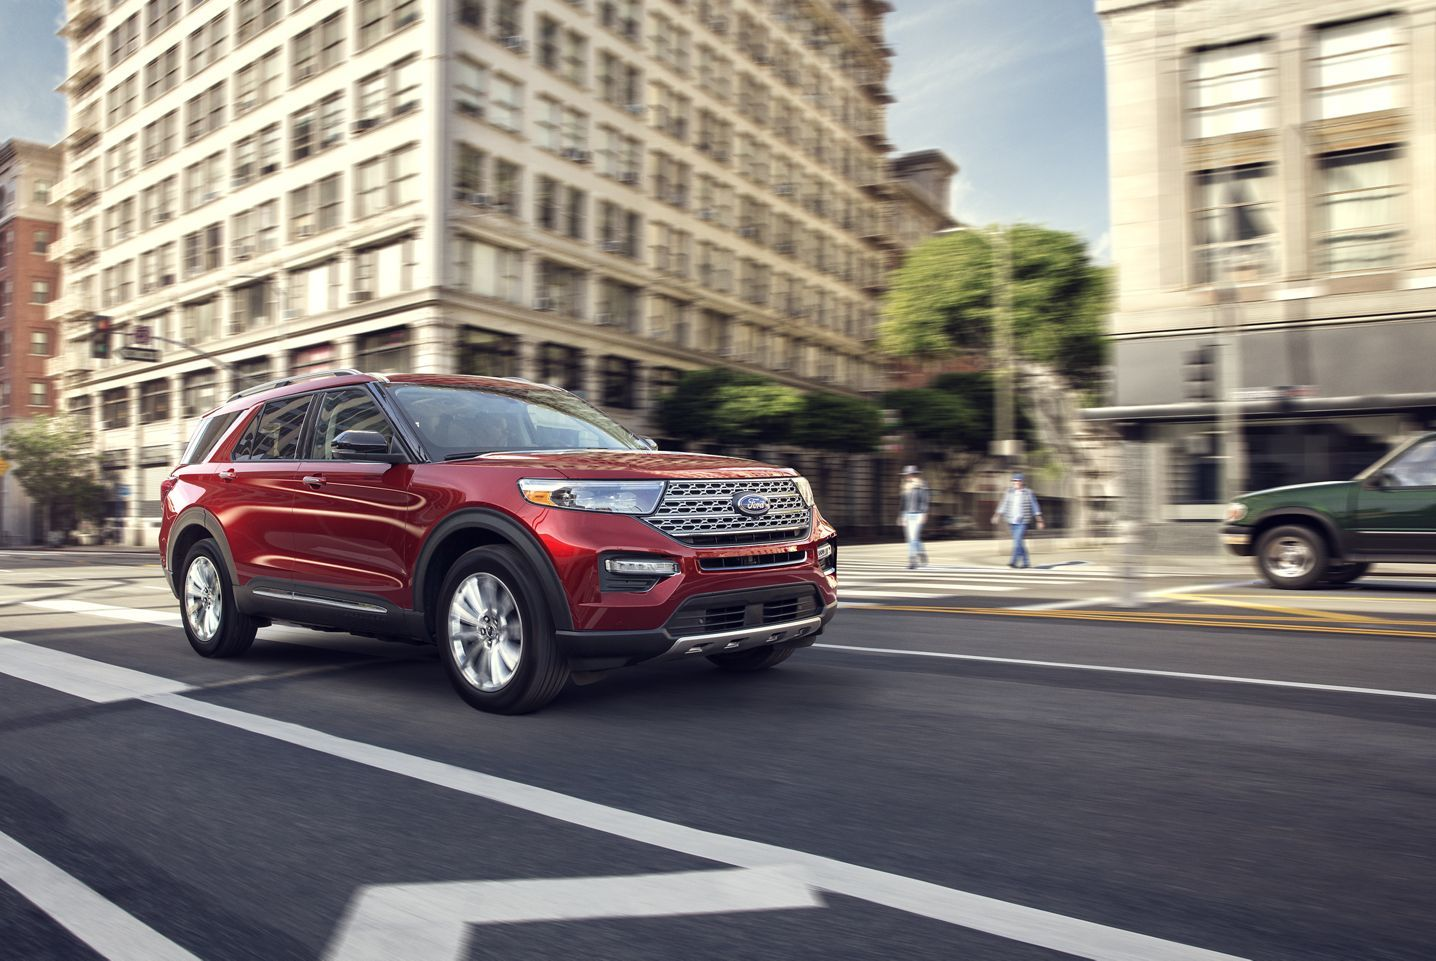 2020 Ford Explorer for Sale near Elizabethtown, KY